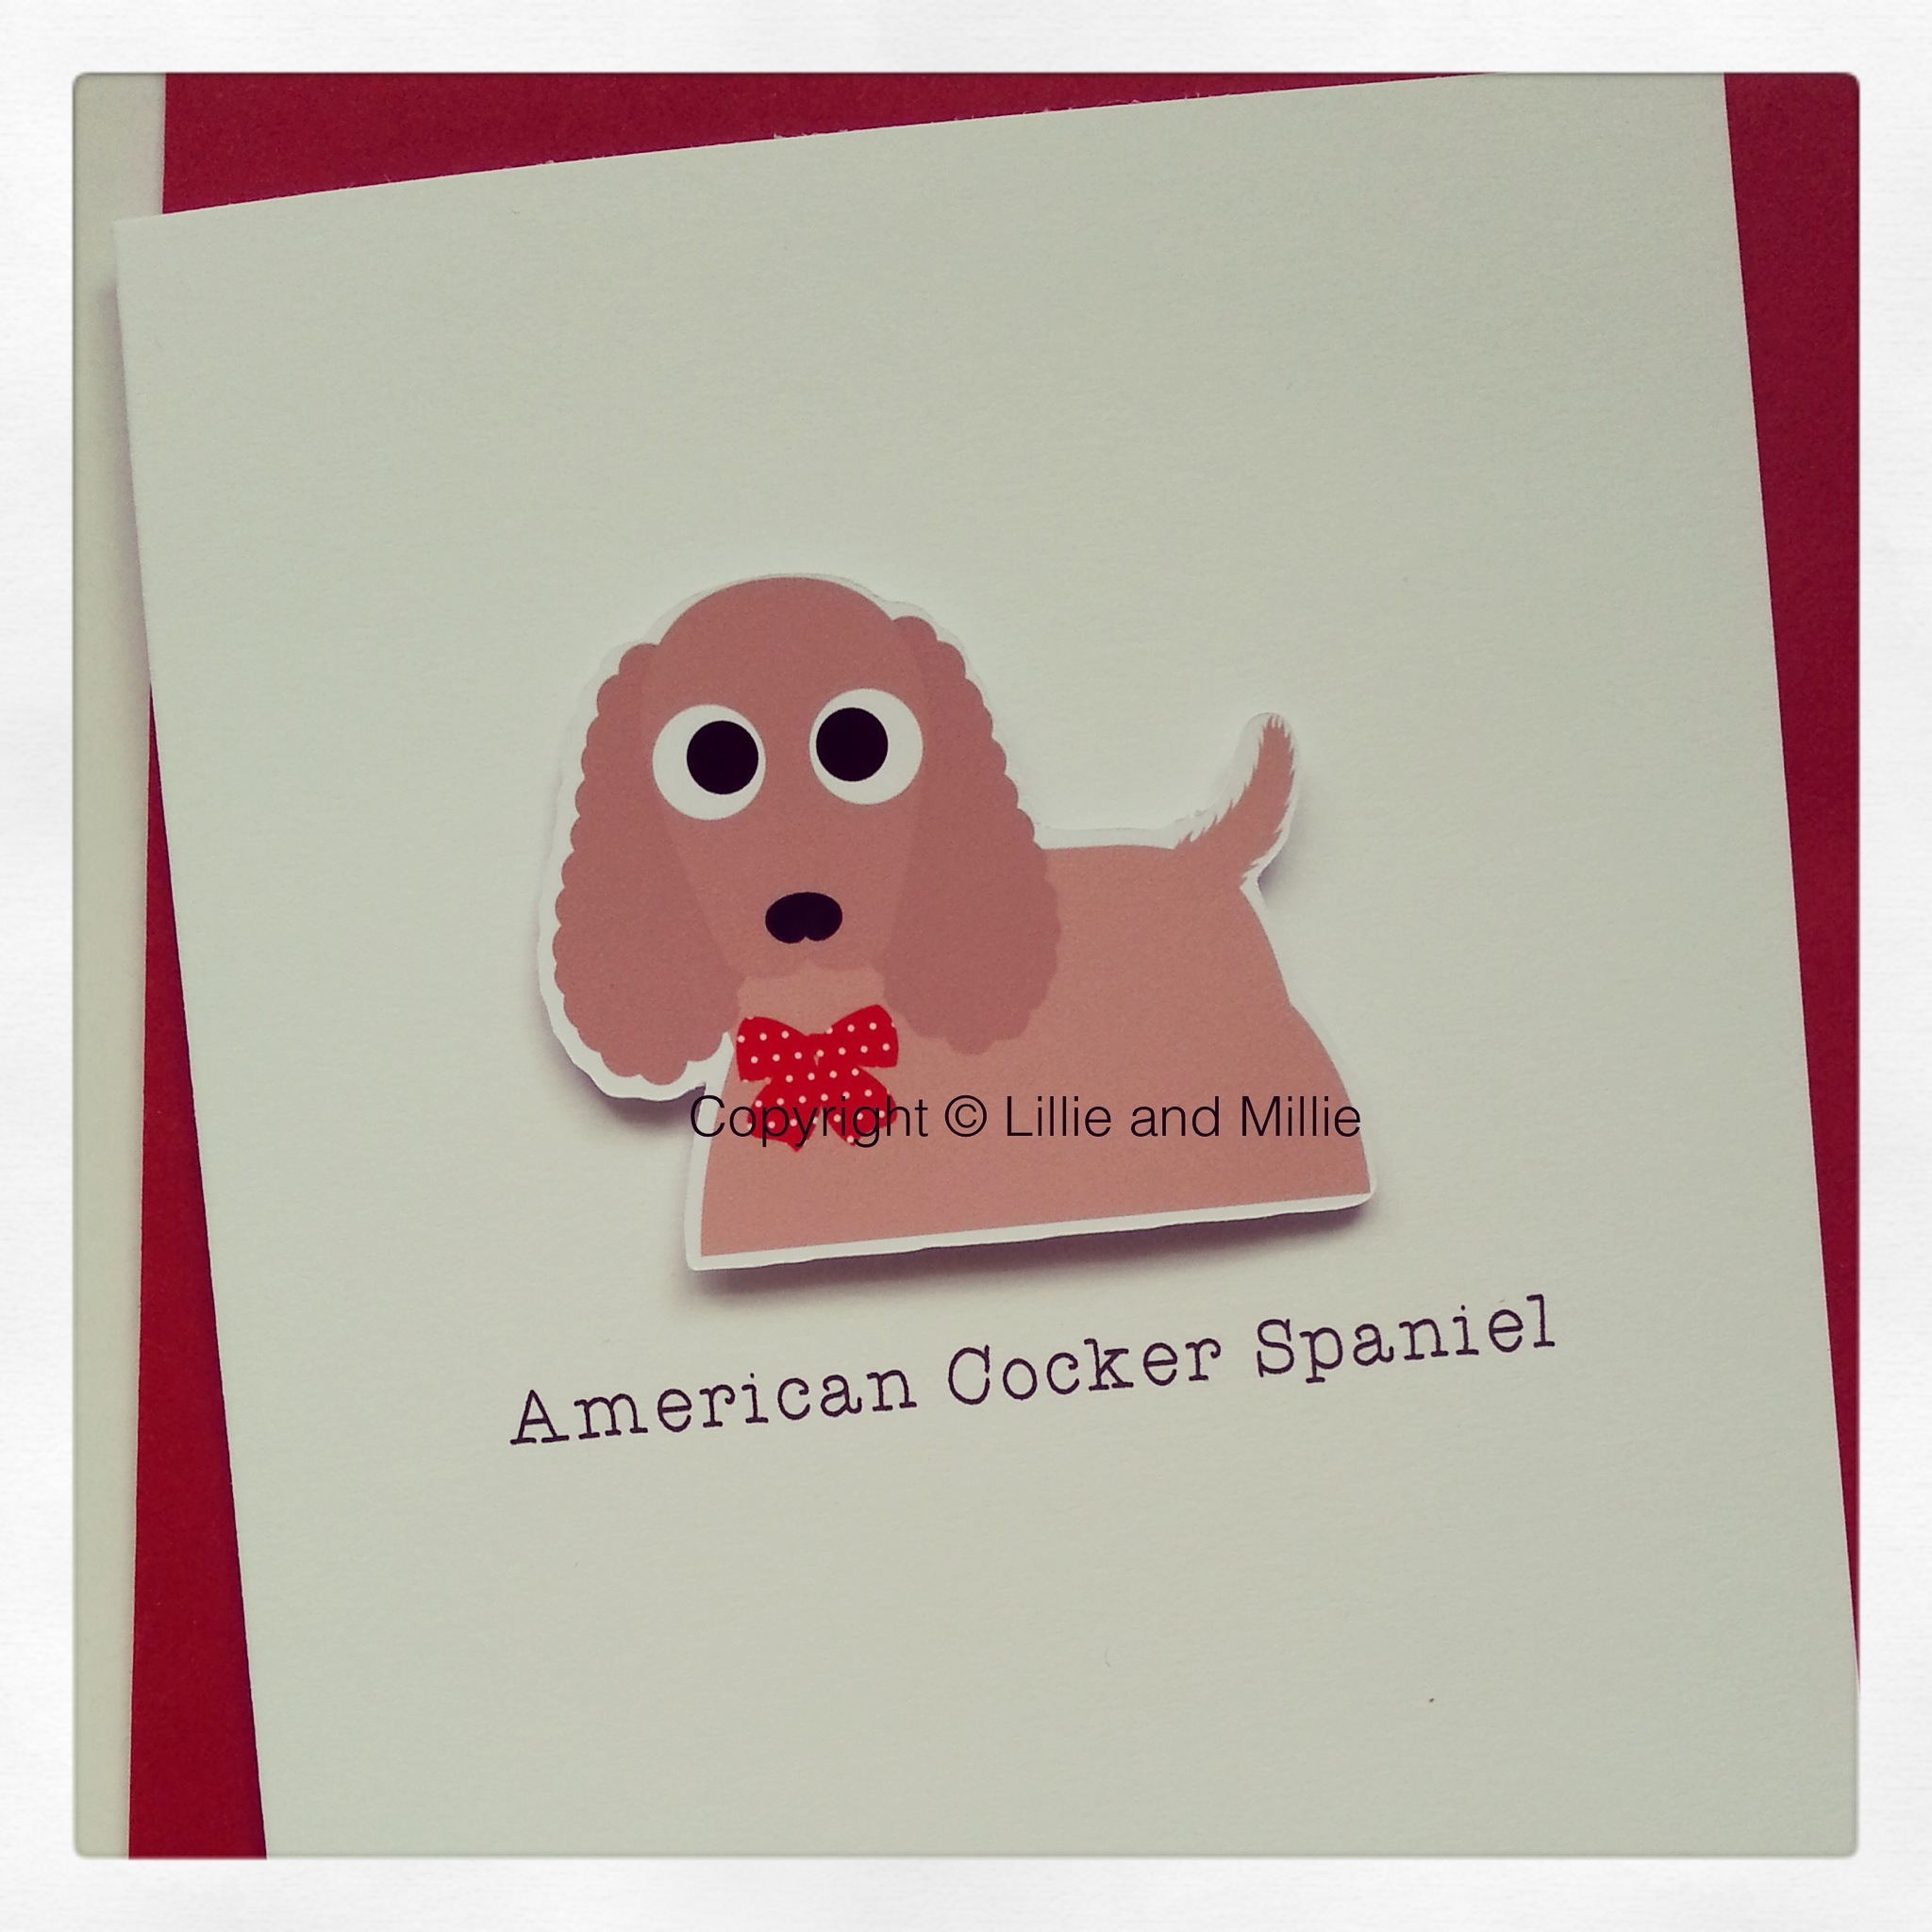 Cute and Cuddly American Cocker Spaniel Greetings Card